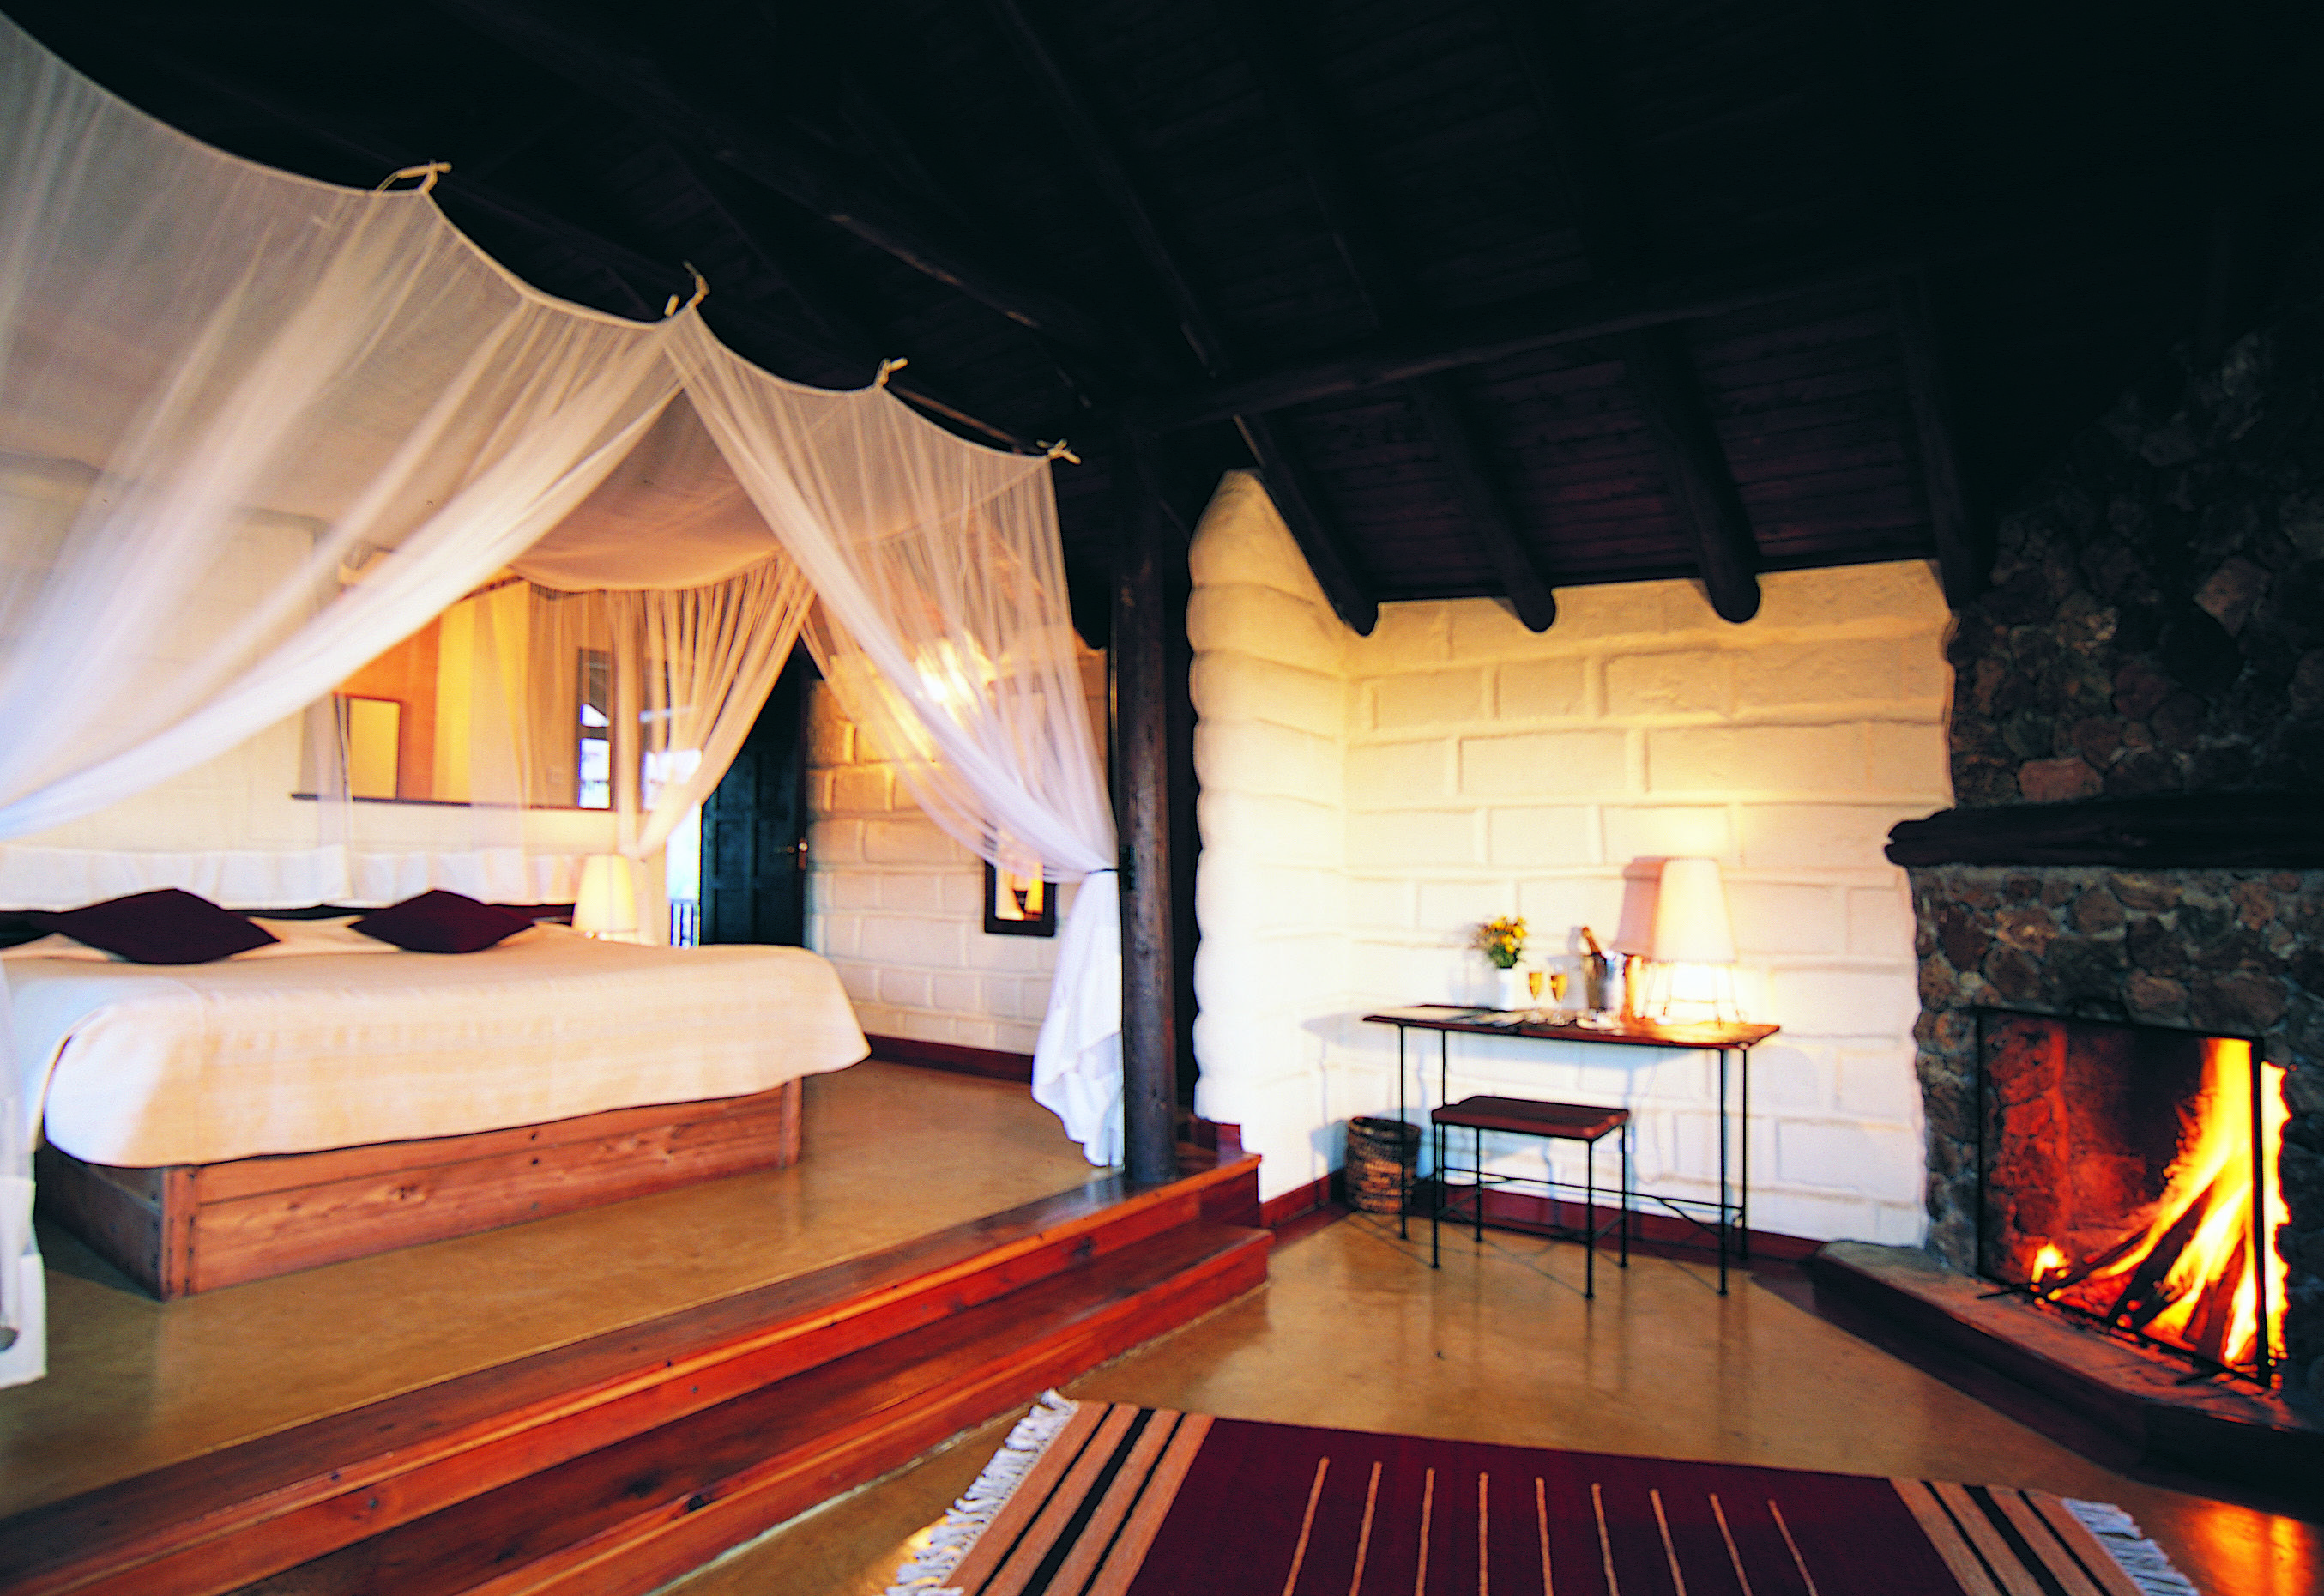 Coccolarsi Al Great Rift Valley Lodge Golf Resort Di Heritage Hotels In Kenya Dormendo